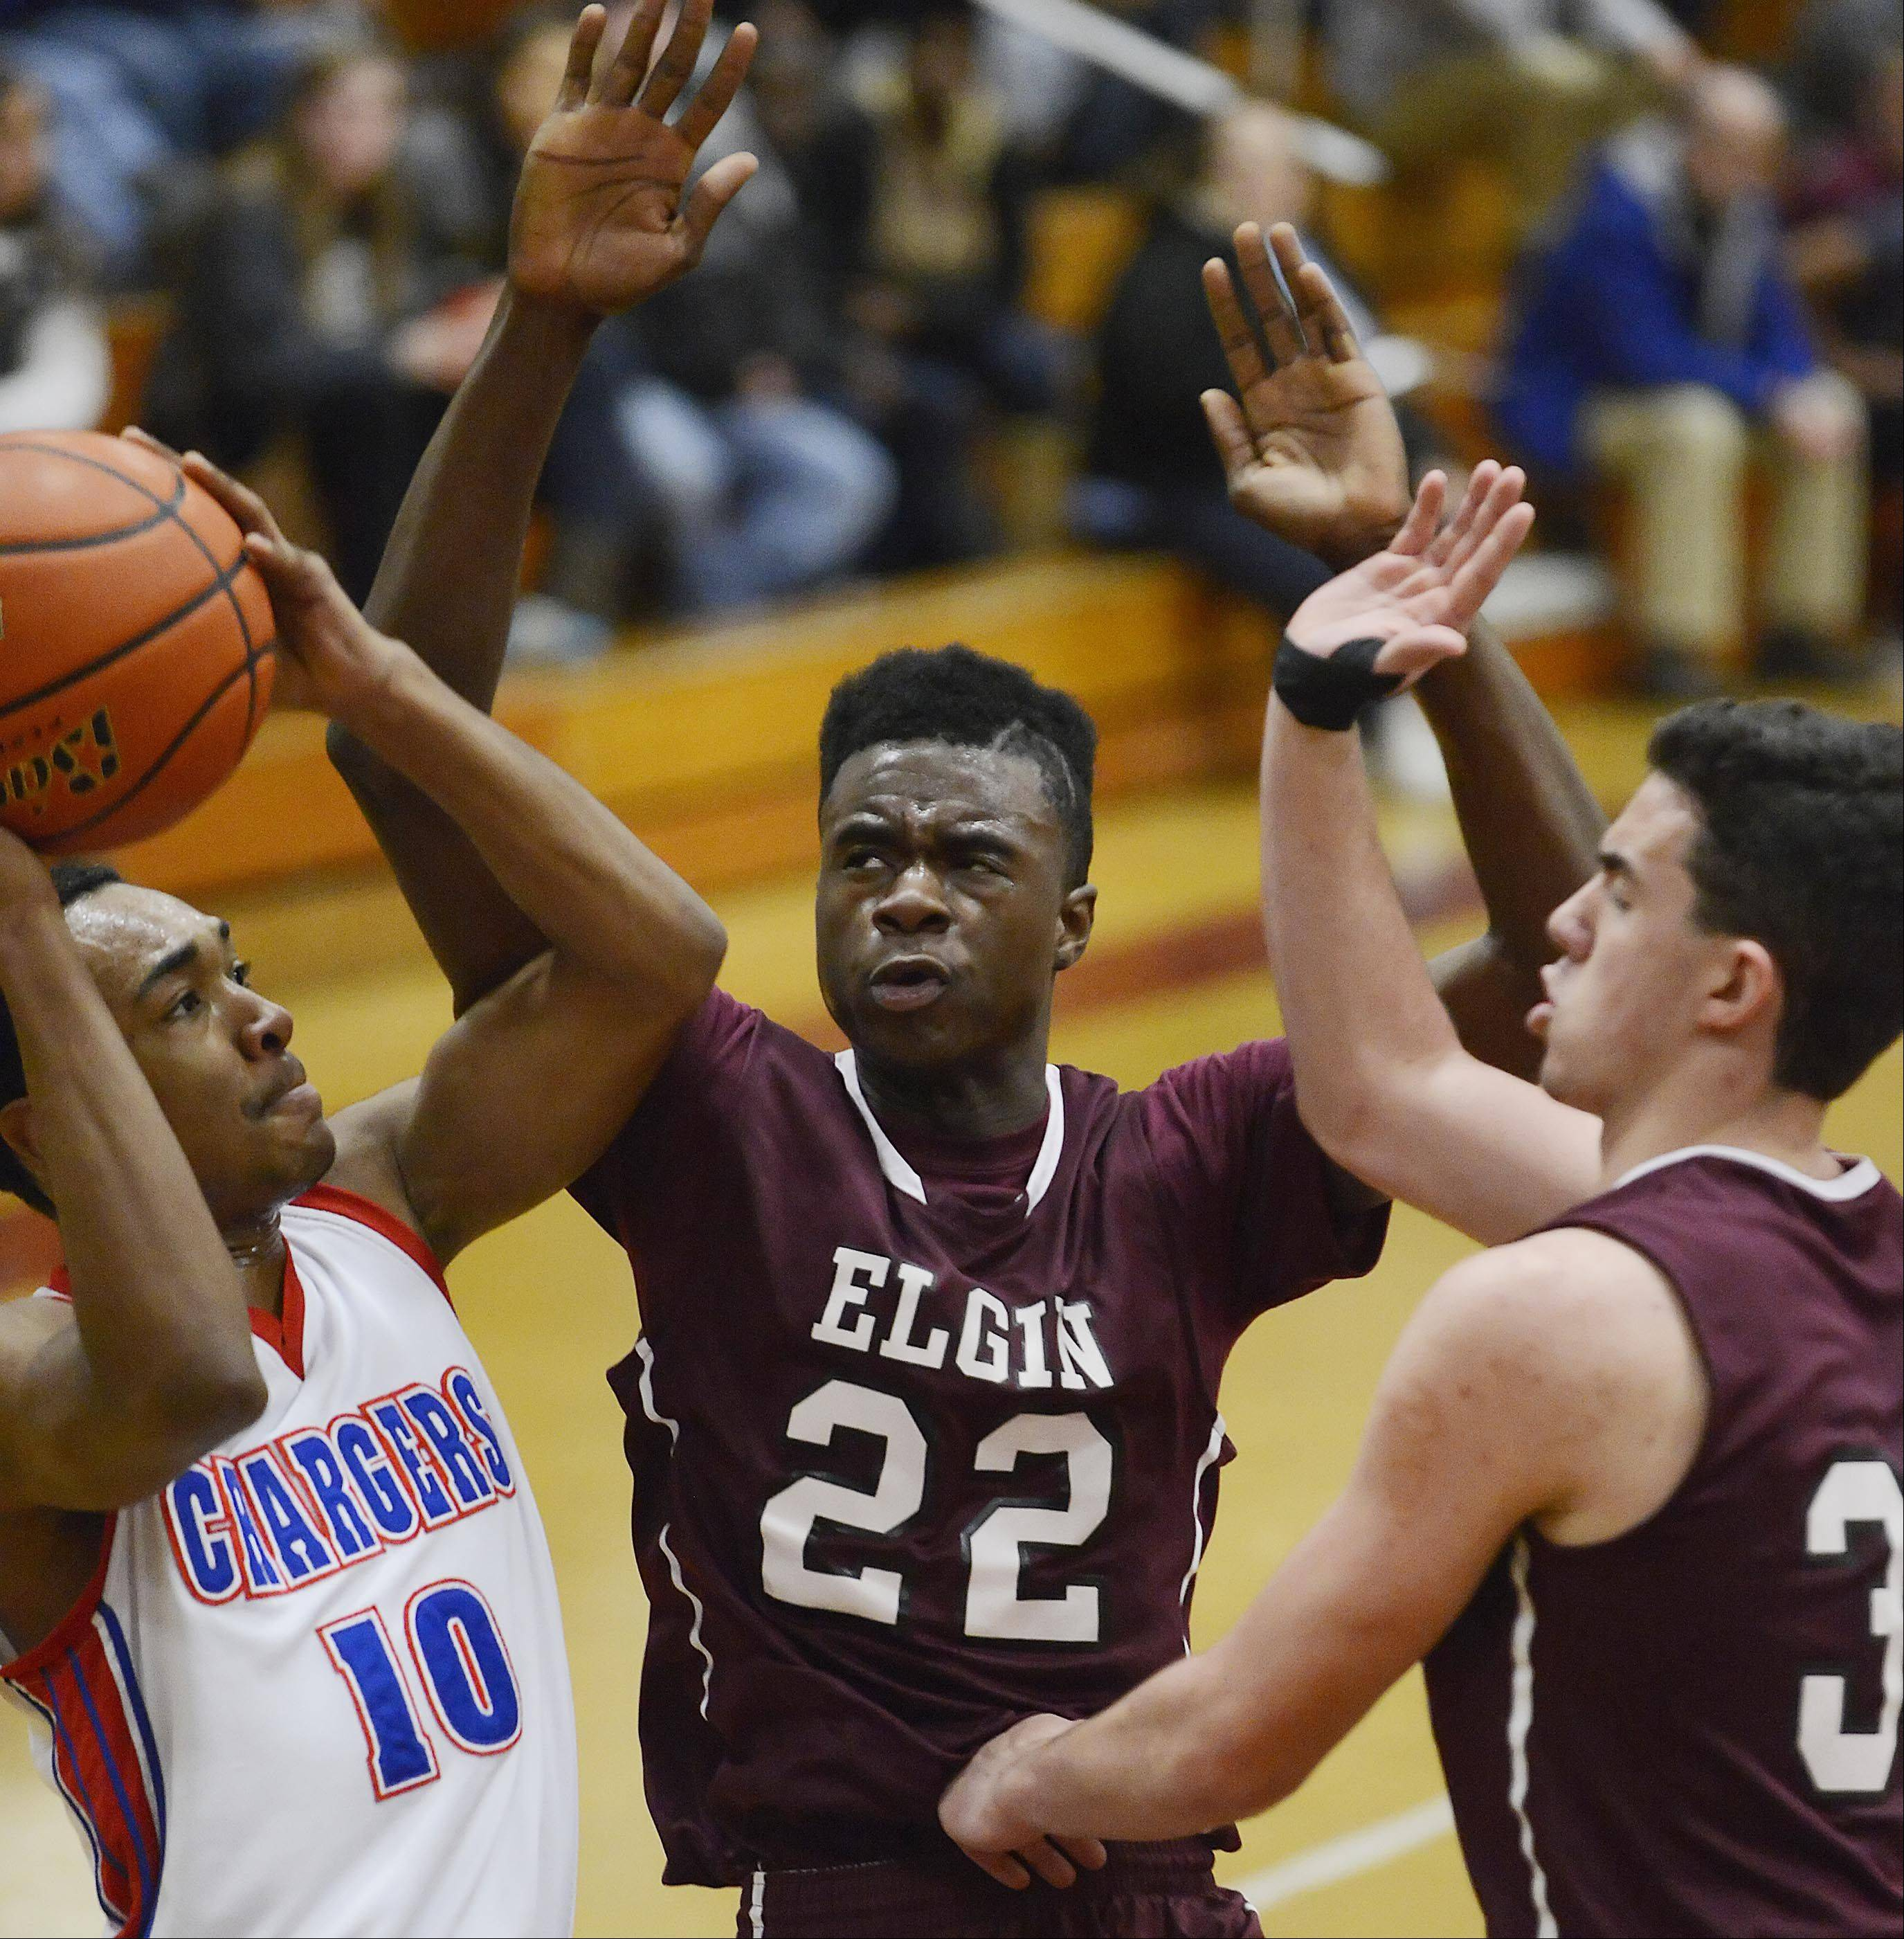 Elgin's Desmond Sanders and Mike Hanneman defend Dundee-Crown's Kiwaun Seals Thursday in the quarterfinal game of the Elgin Holiday Tournament.